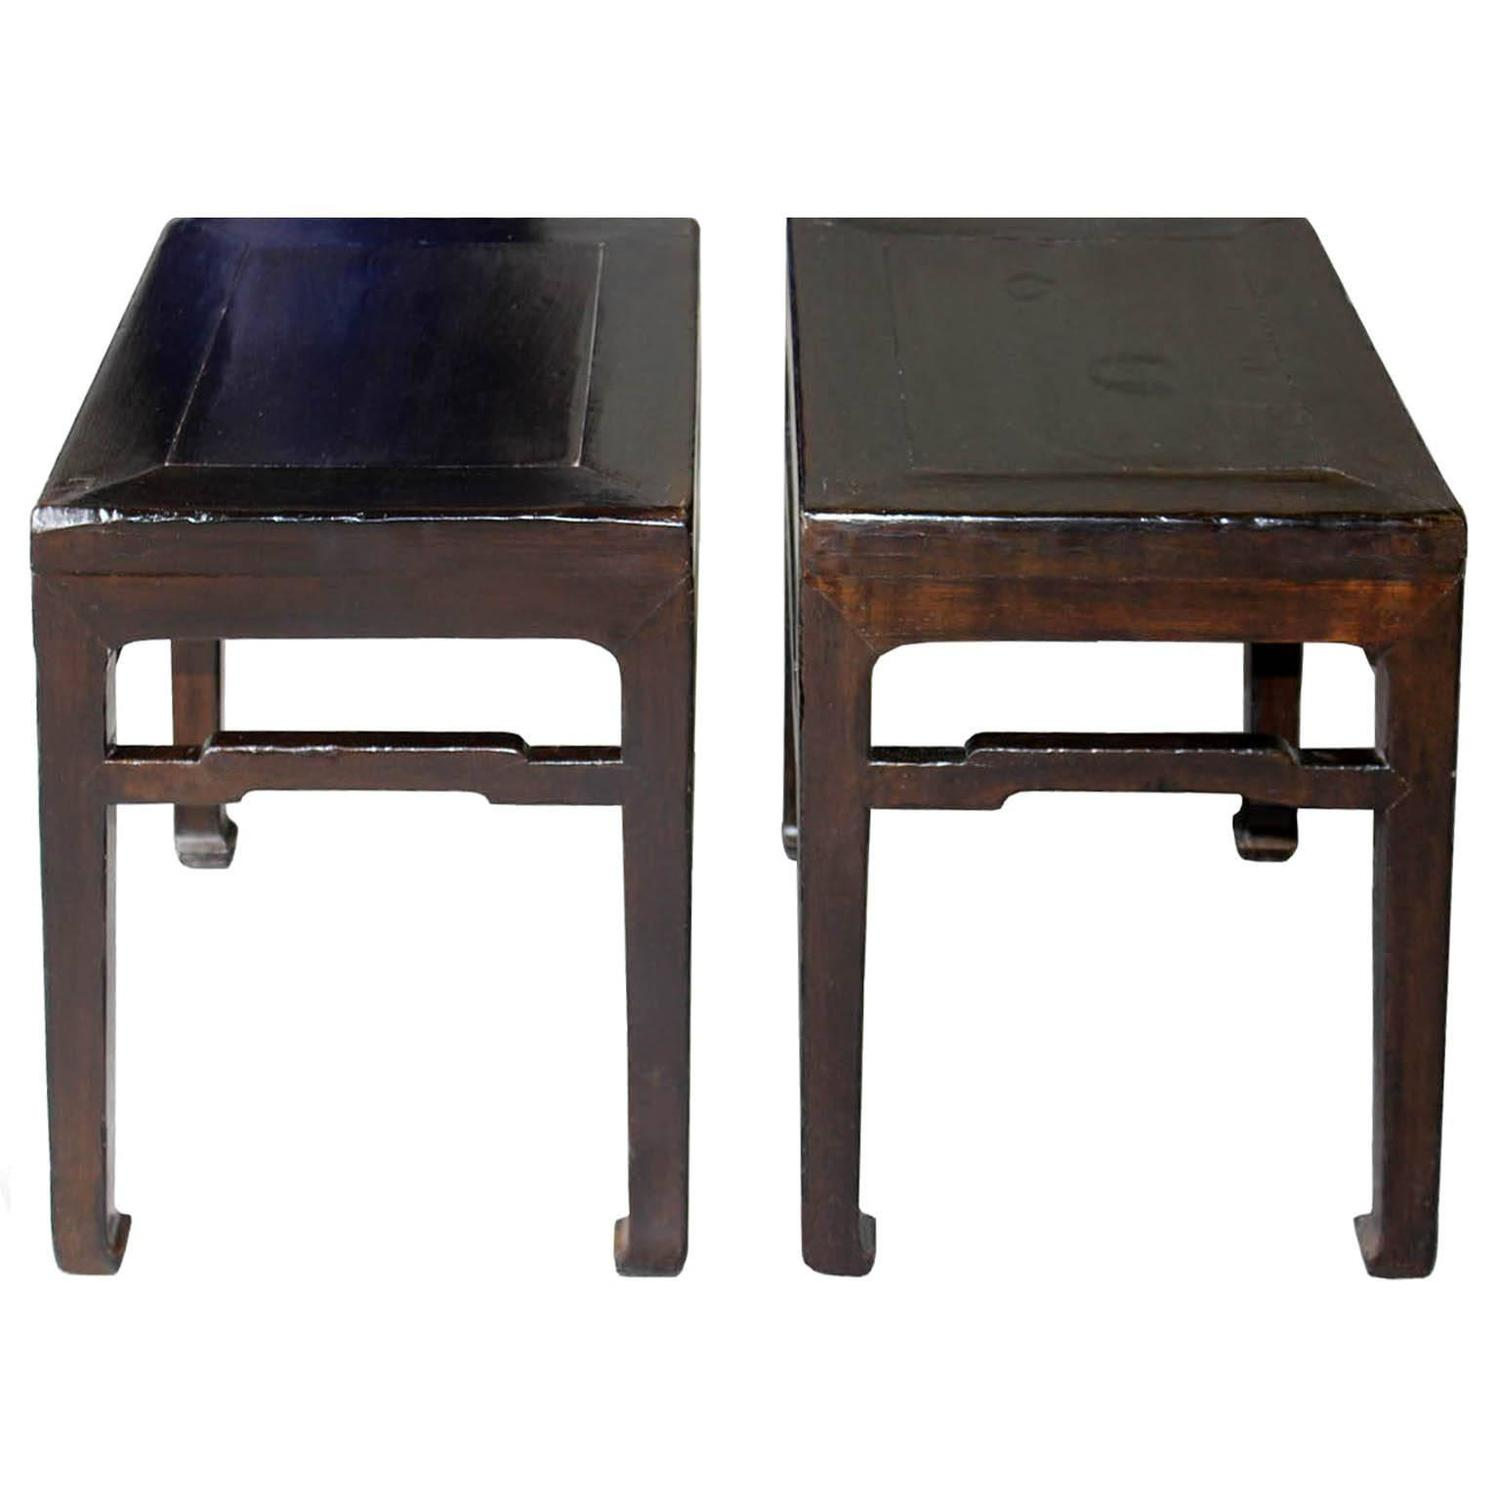 Ming style elm tables pair at 1stdibs for Elm furniture